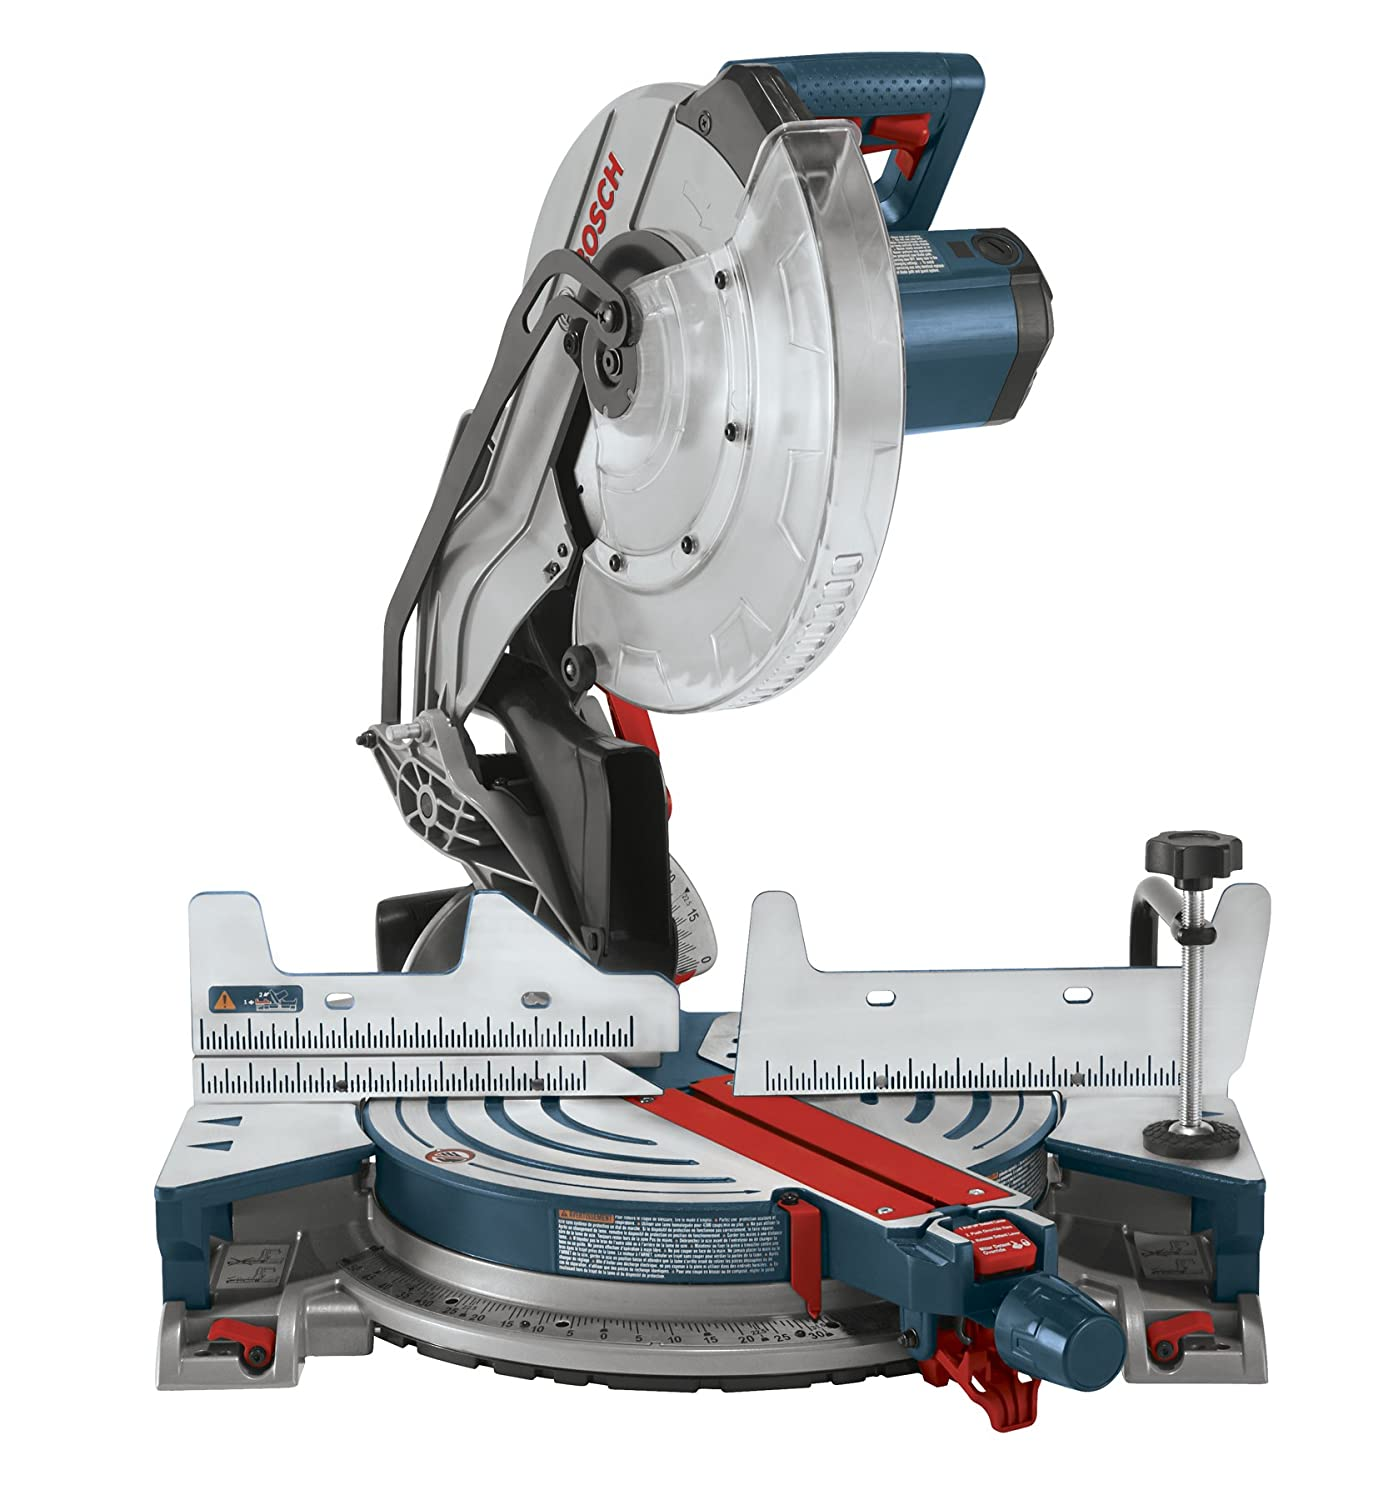 Bosch cm12 12 inch single bevel compound miter saw with dust bag and bosch cm12 12 inch single bevel compound miter saw with dust bag and blade change wrench power miter saws amazon greentooth Image collections